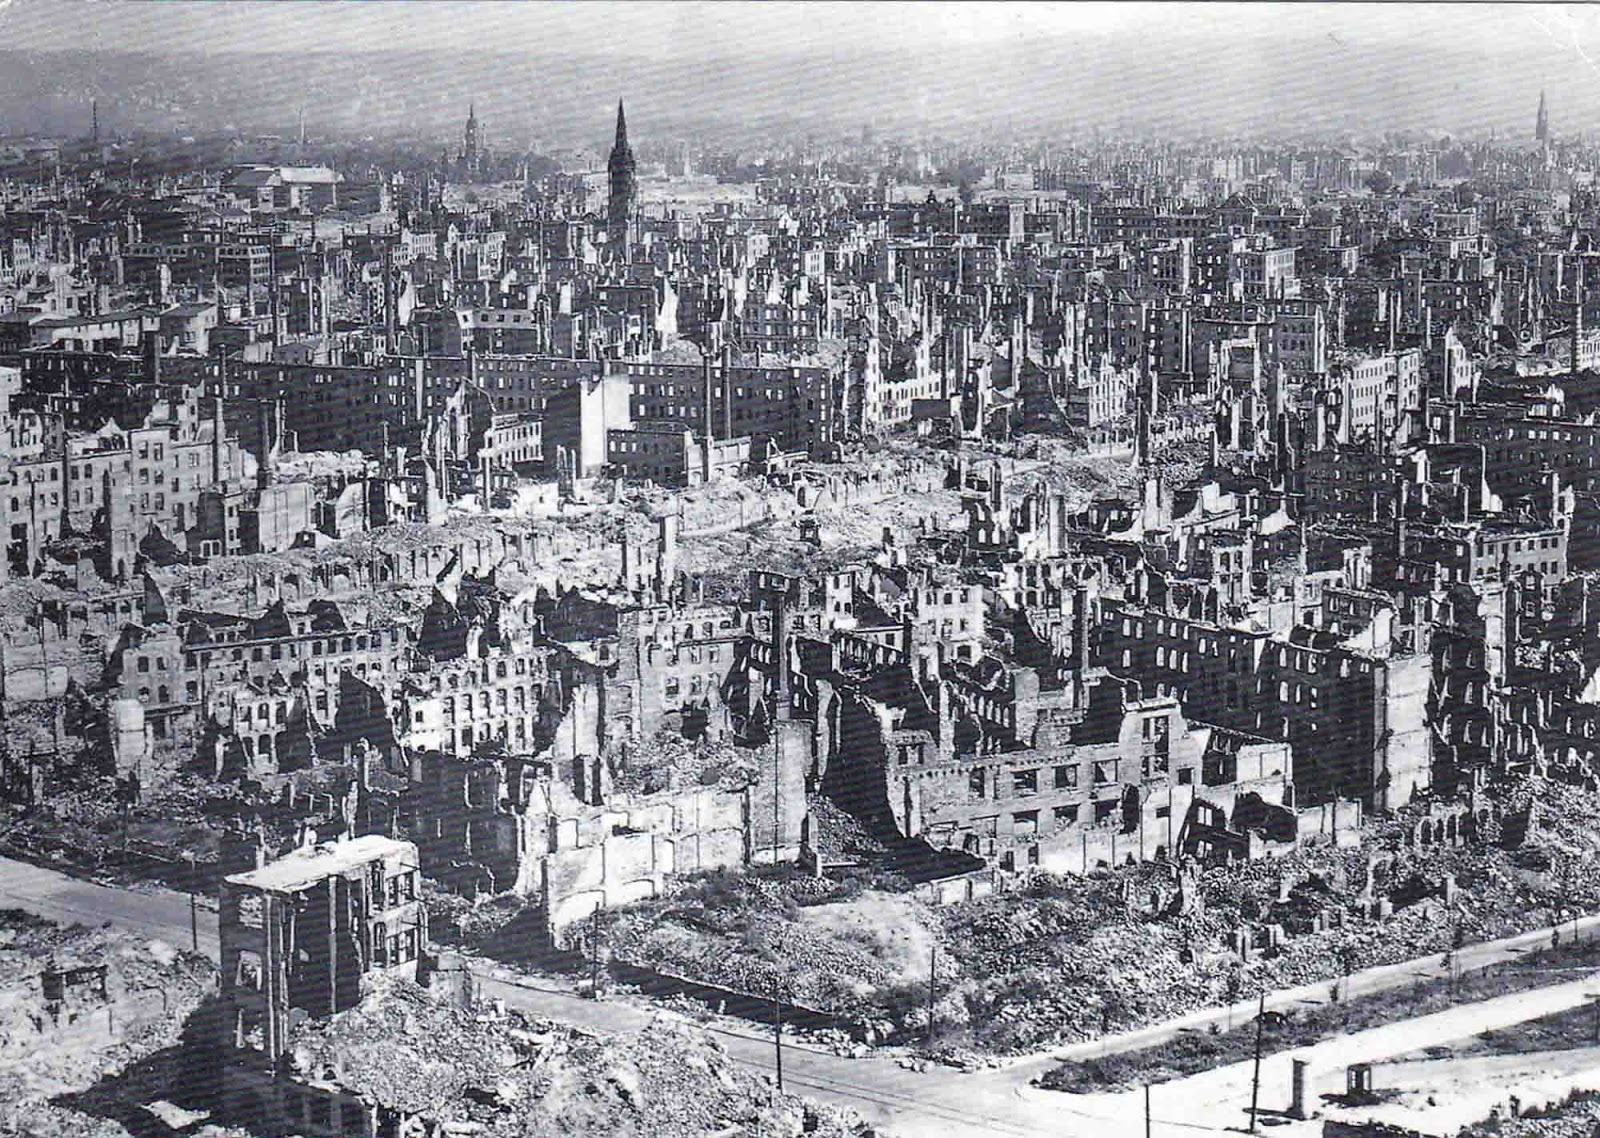 Over ninety percent of the city center was destroyed.